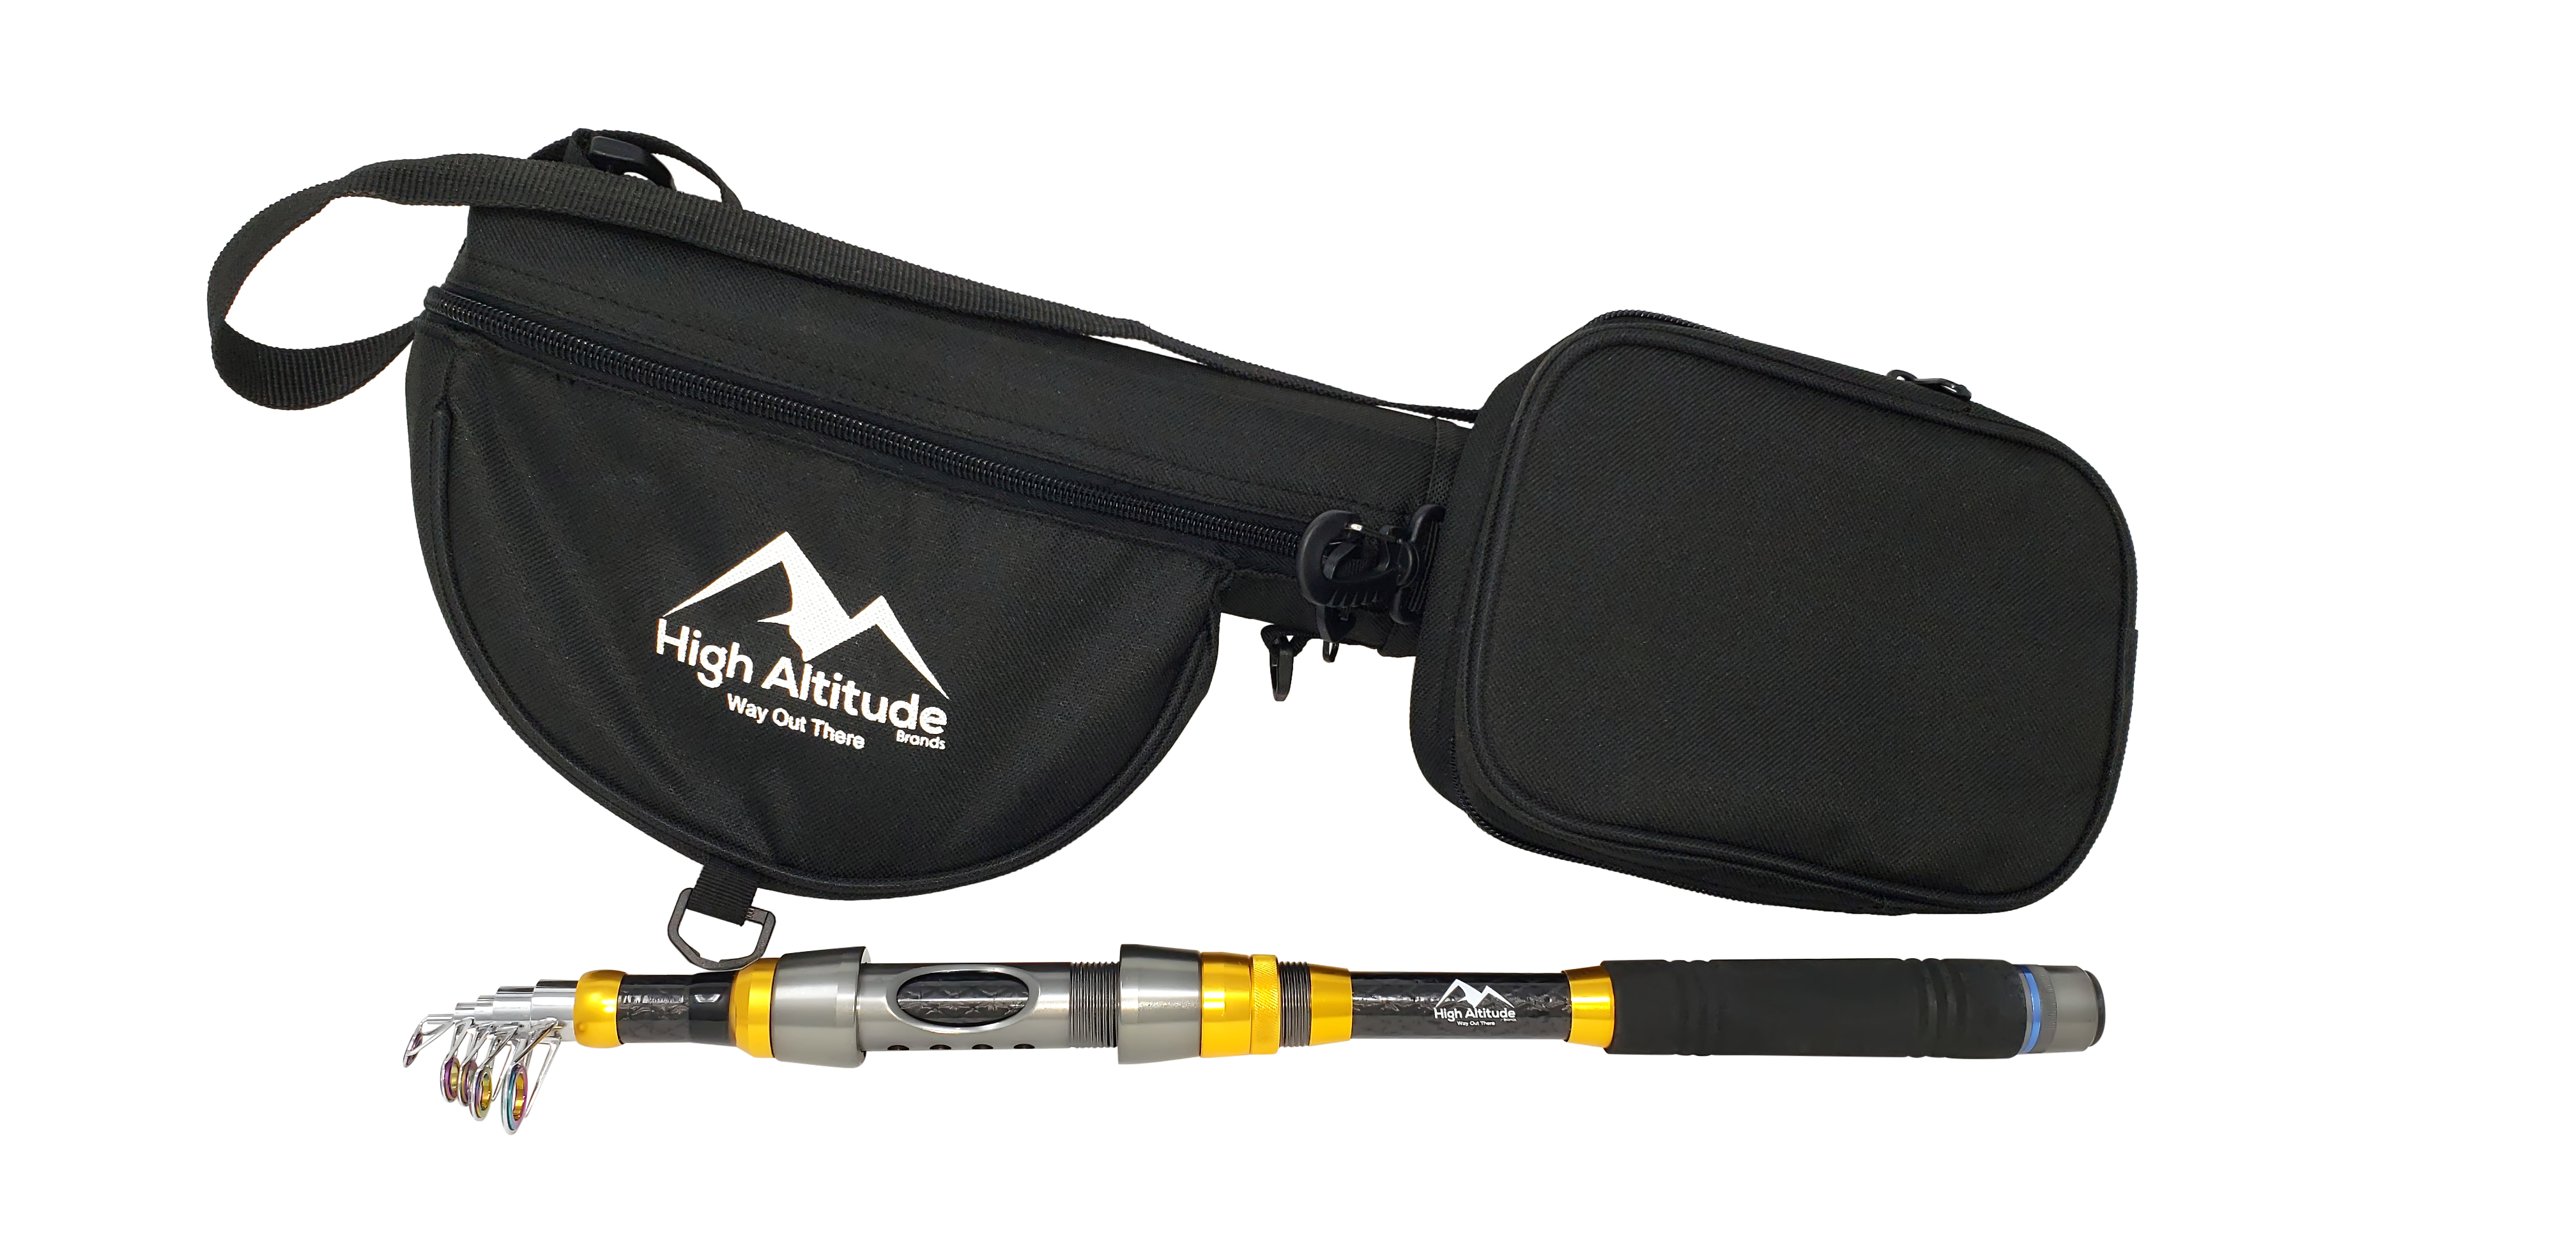 Unveiling High Altitude Brands new telescopic Backcountry